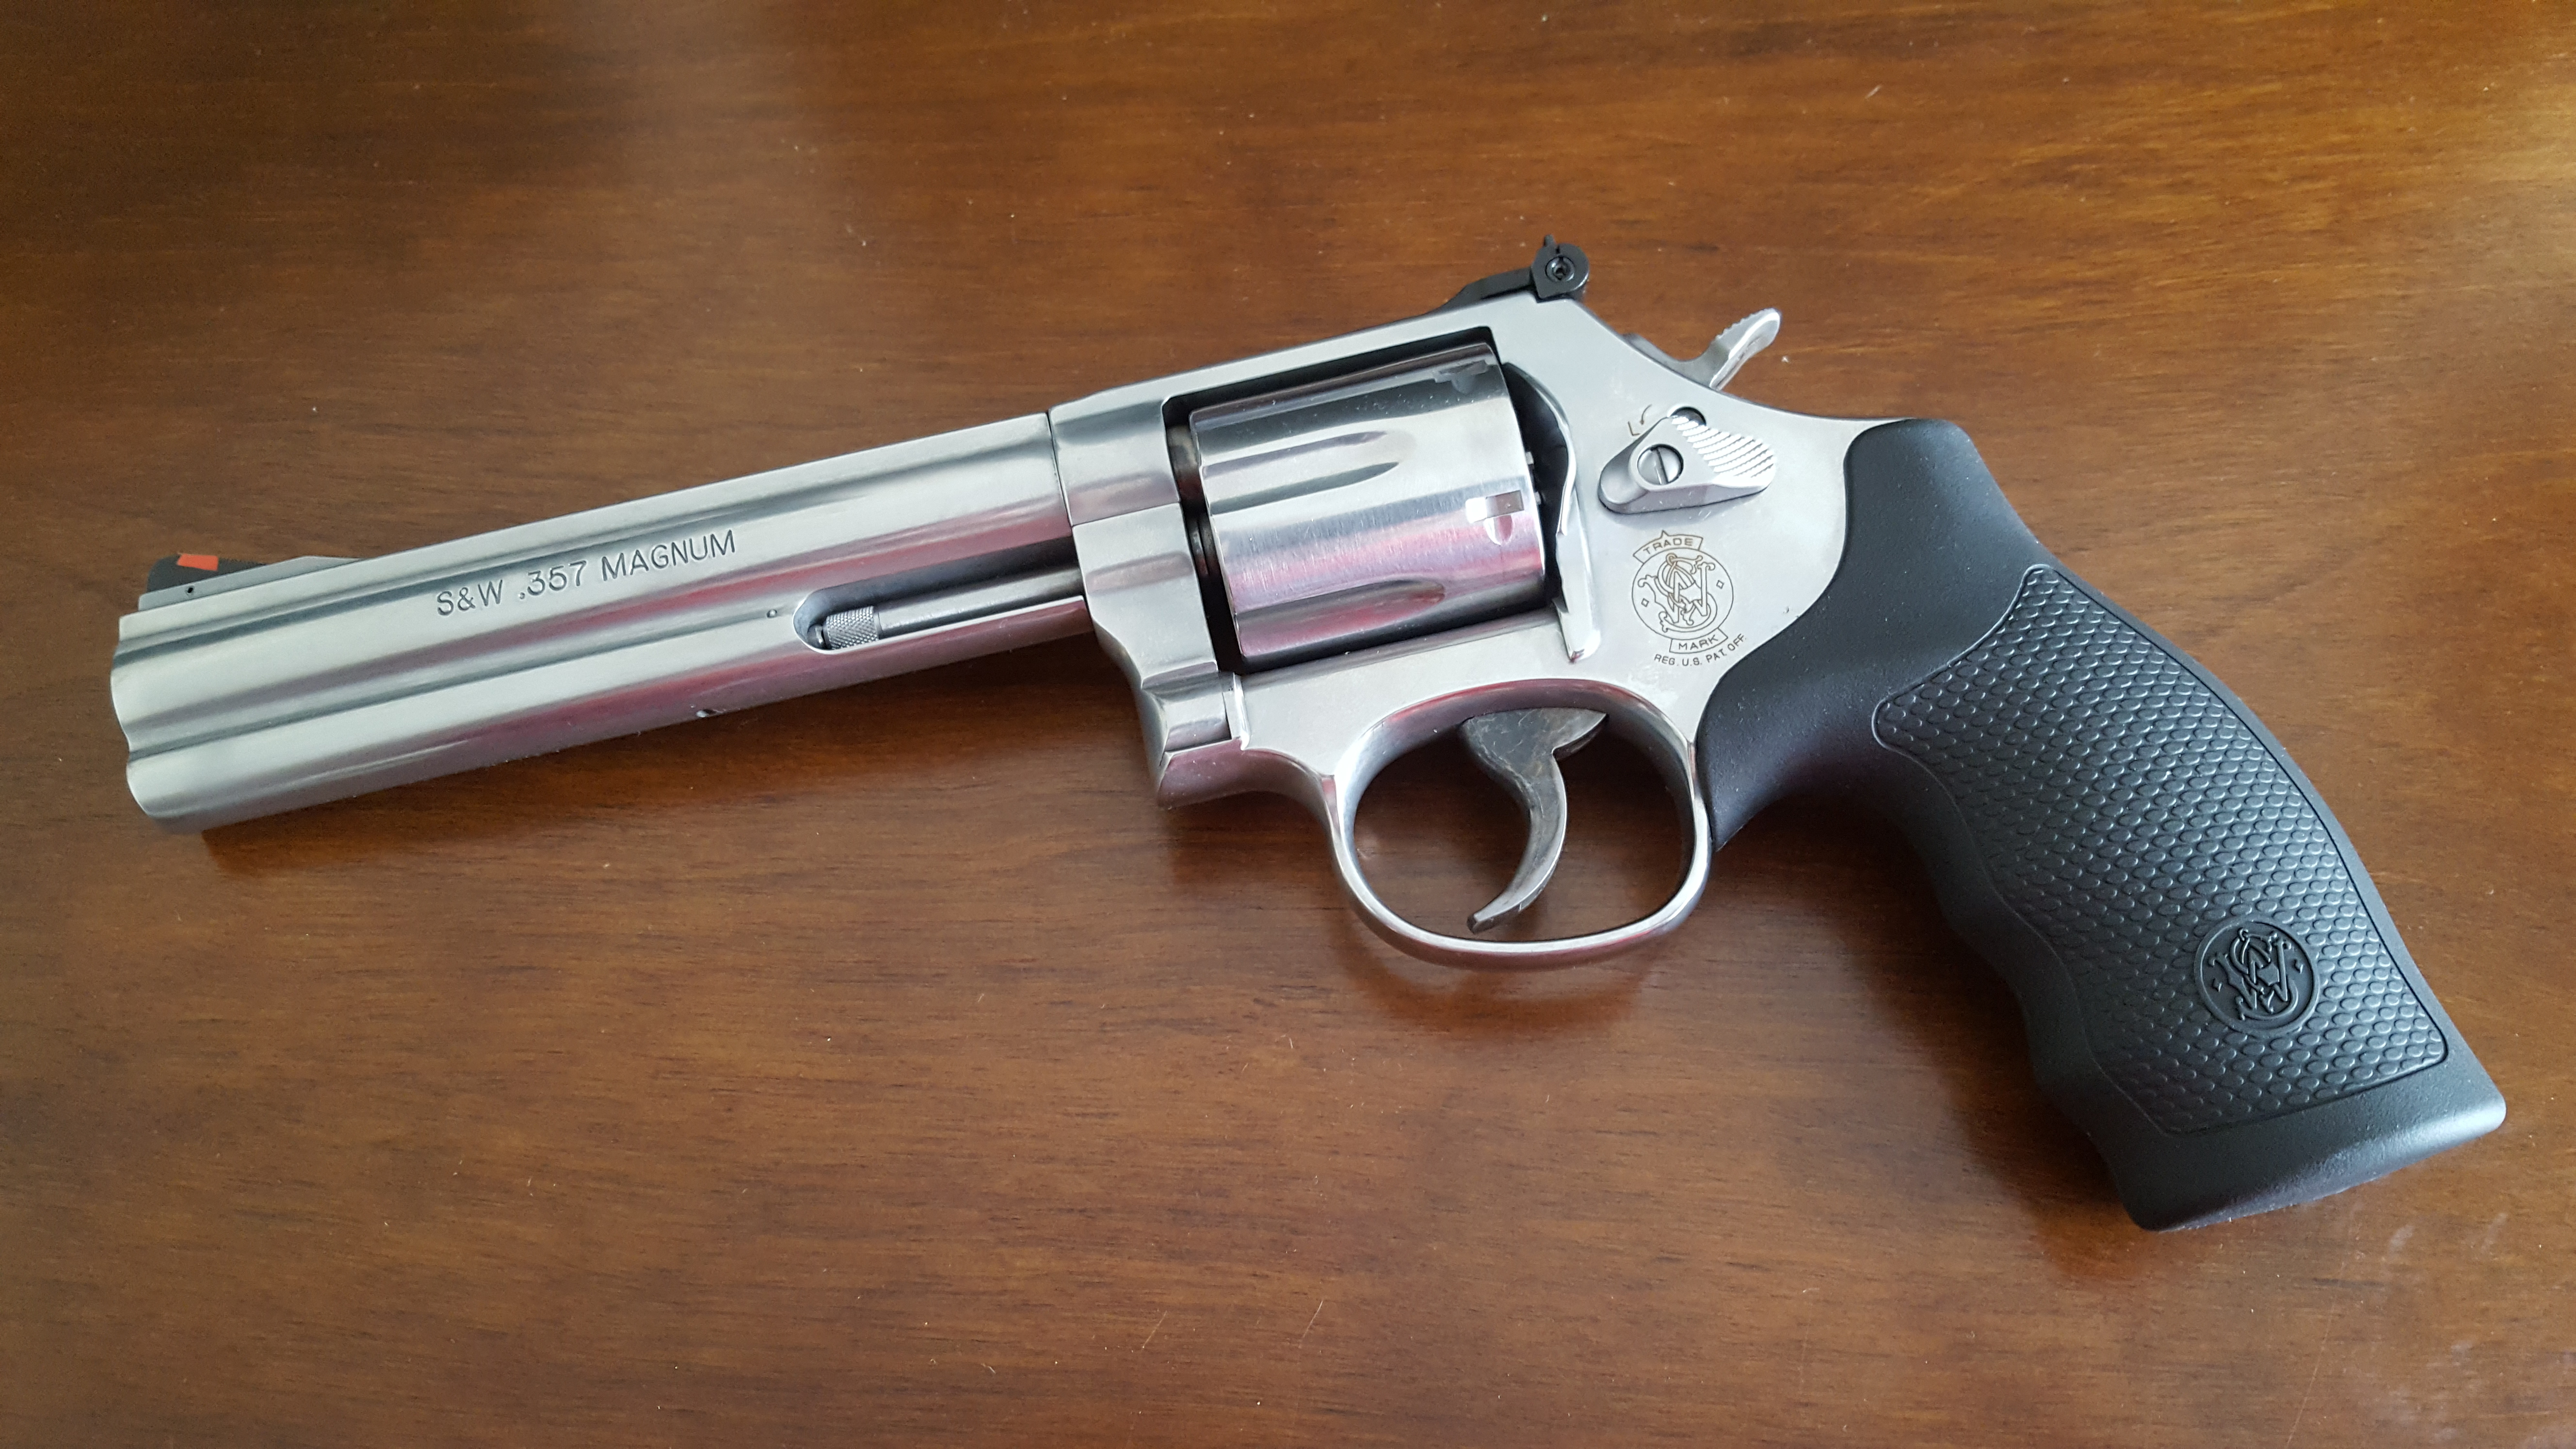 I Just Acquired A Smith Wesson 686 Revolver Chambered In 357 Magnum Ive Owned And Fired Many Handguns But Never